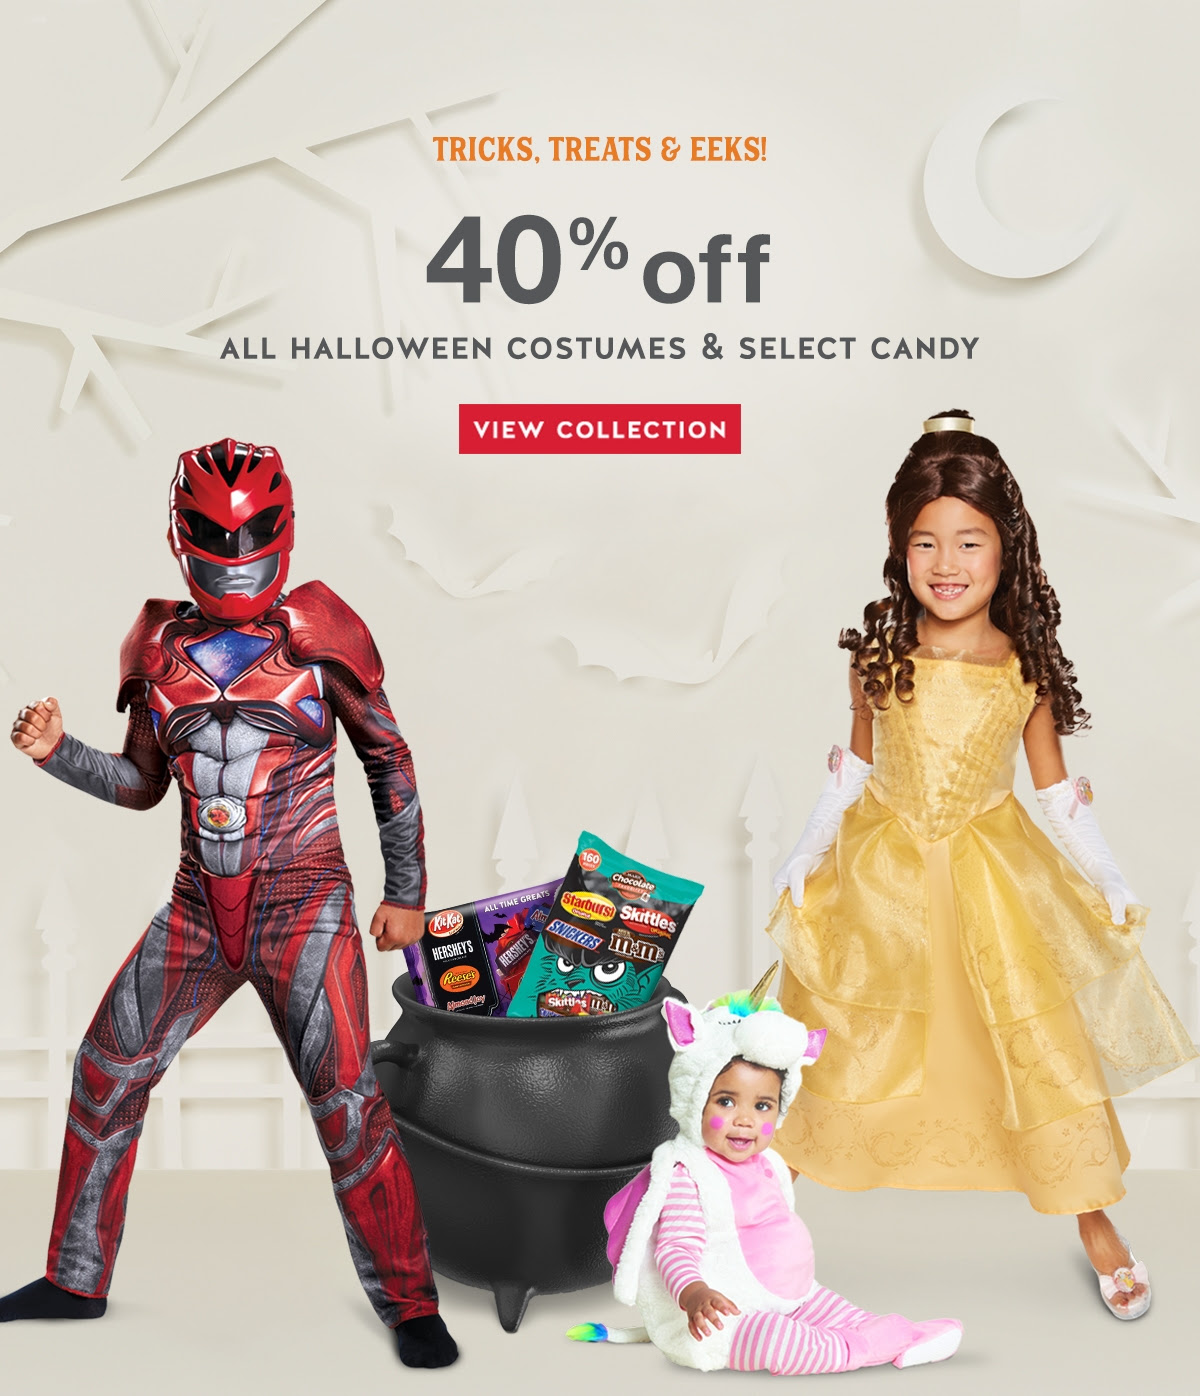 Tricks, treats & eeks! 40% off all Halloween costumes & select candy. View collection.